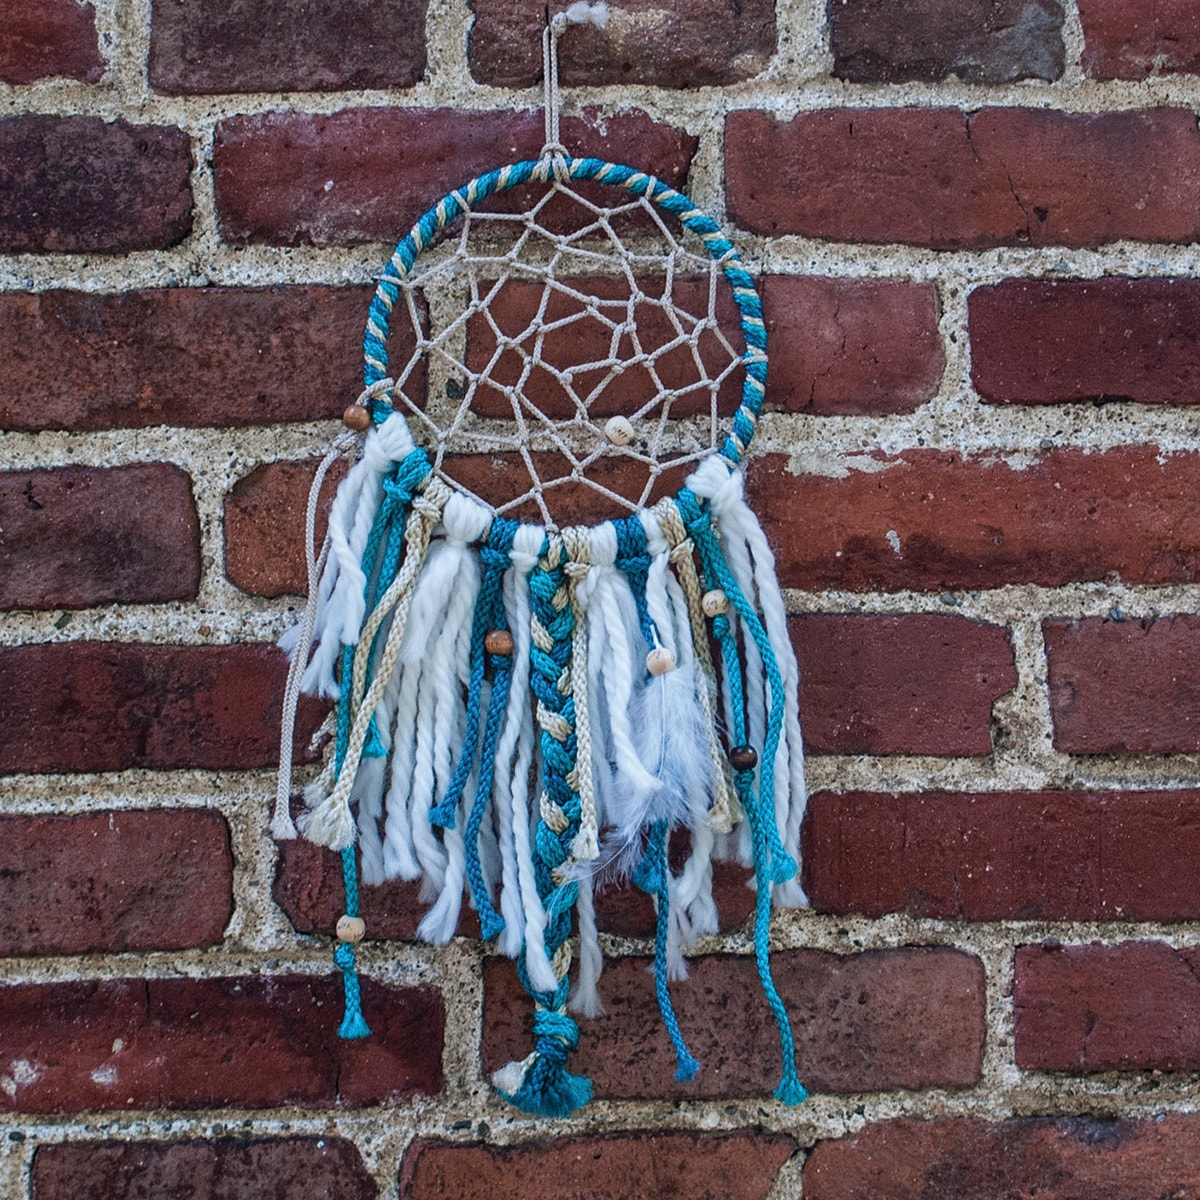 Pepperell Braiding Macrame Dream Catcher Kit